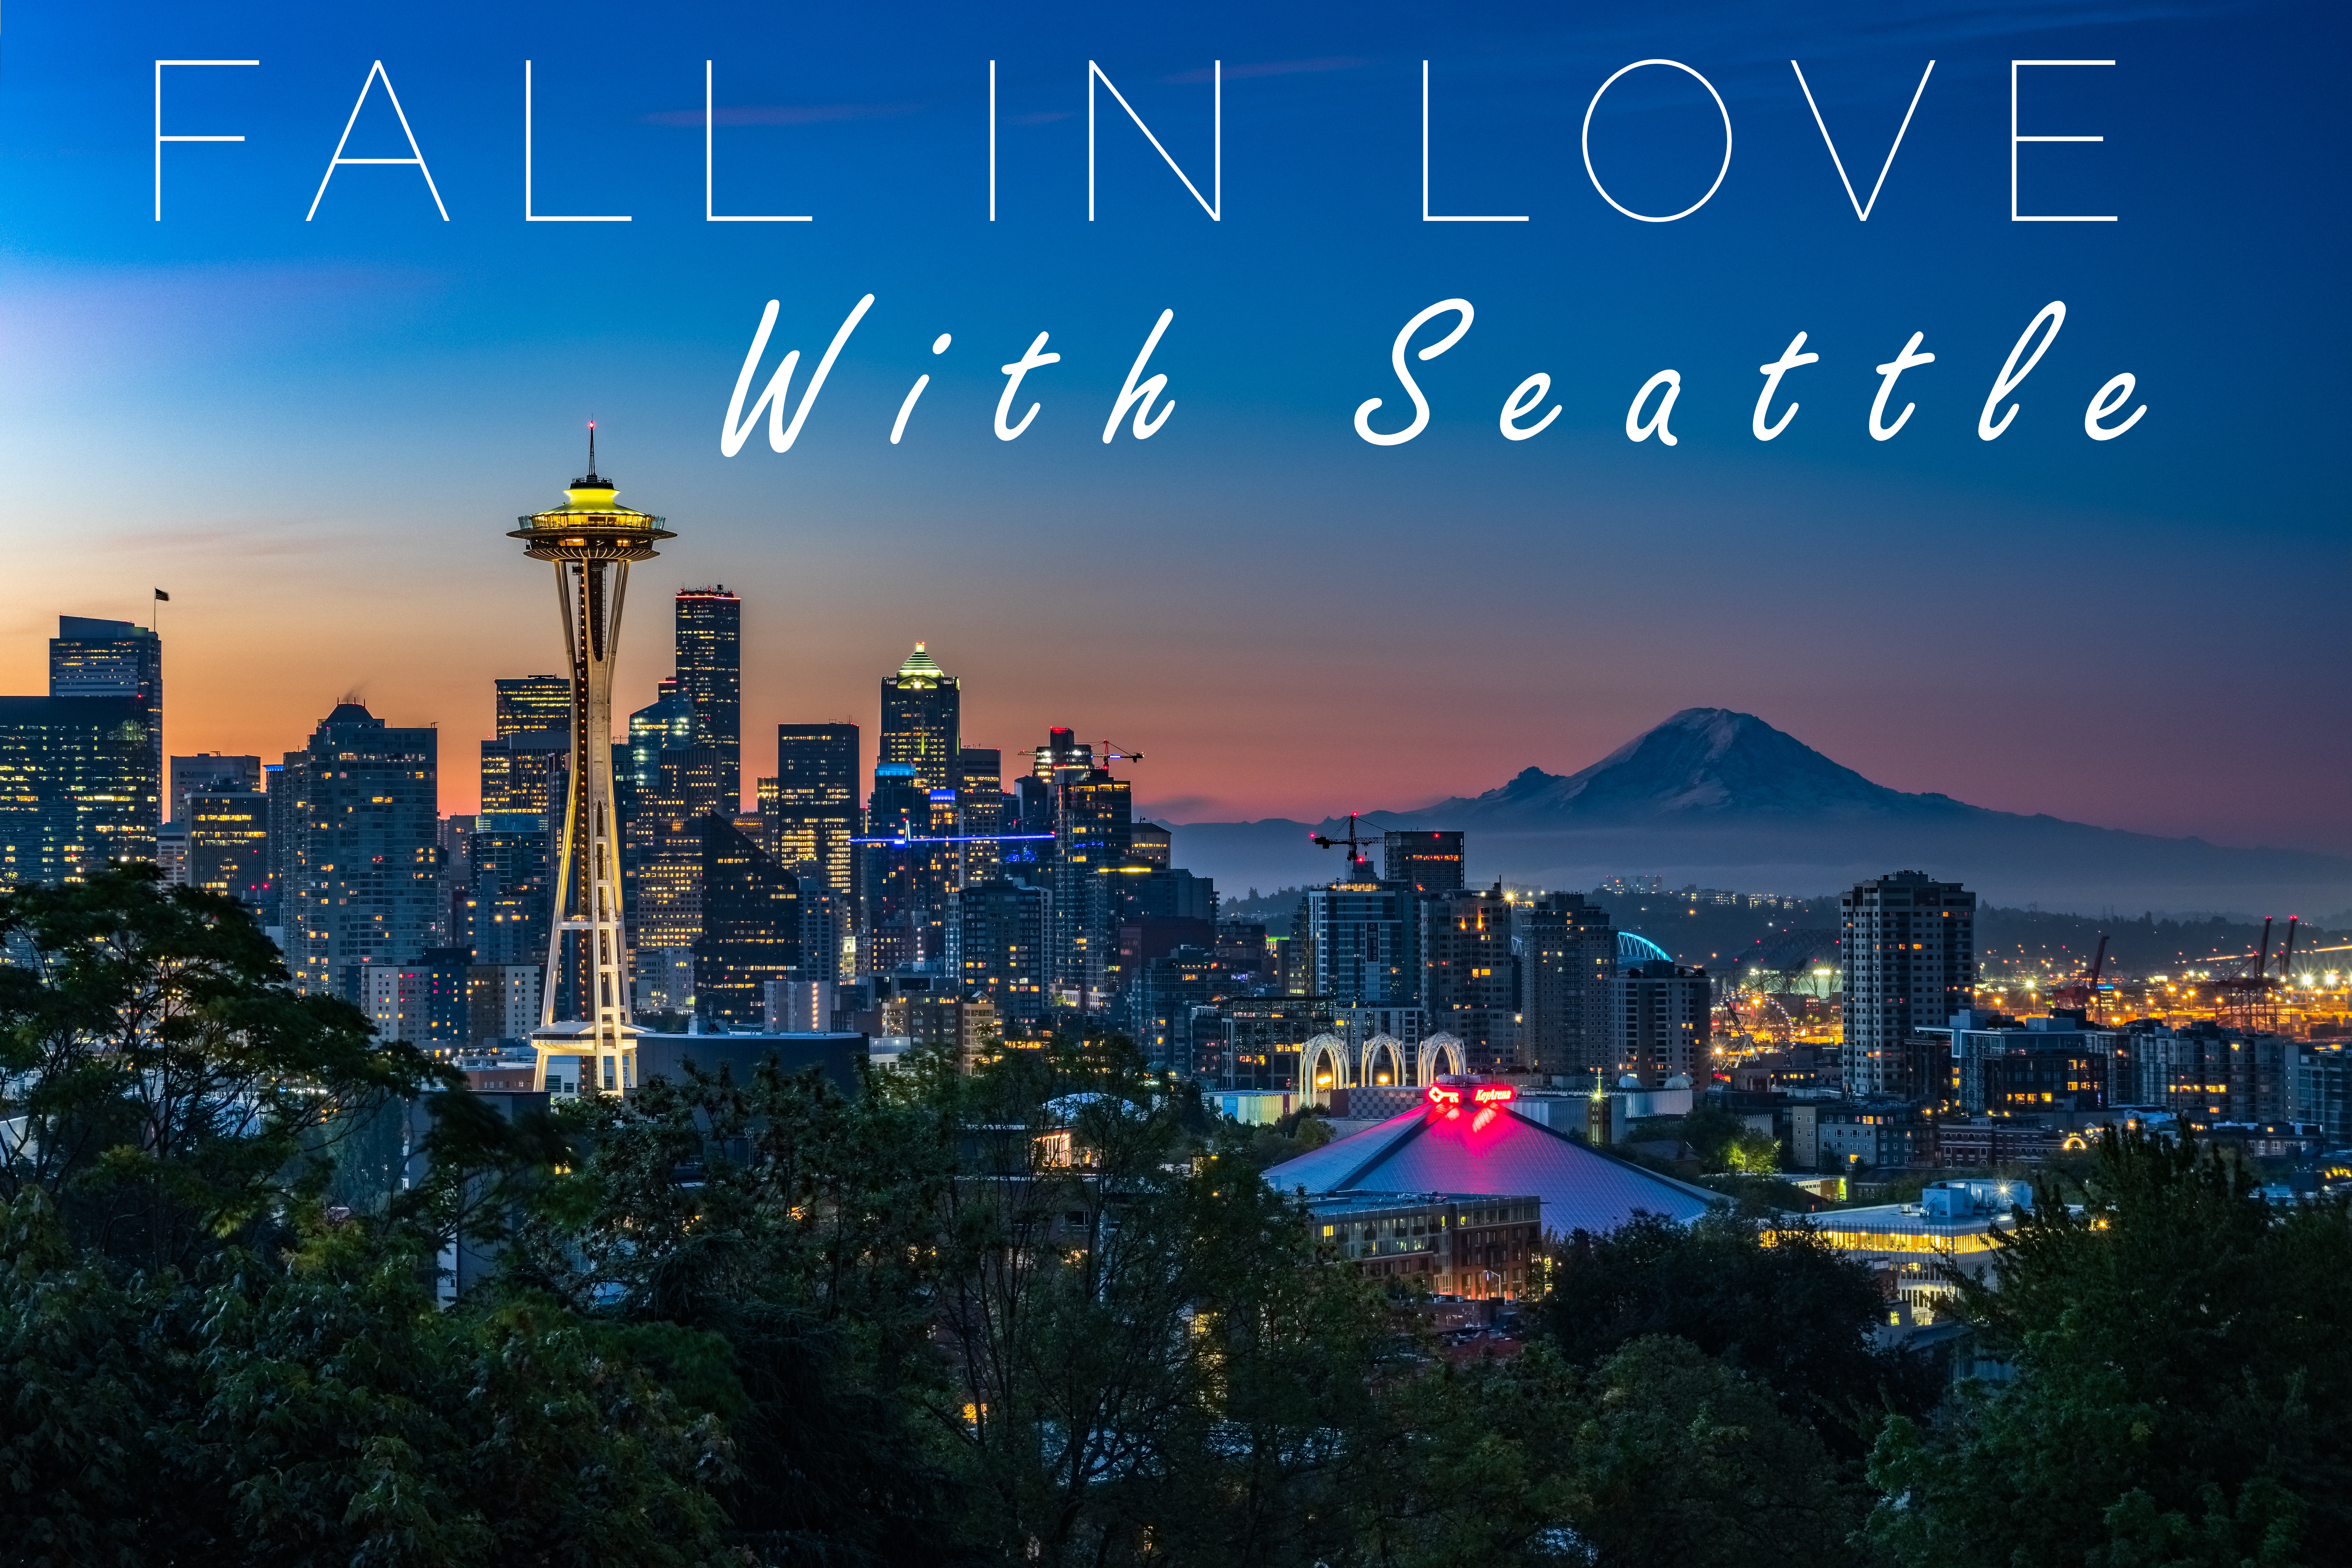 Fall in Love with Seattle